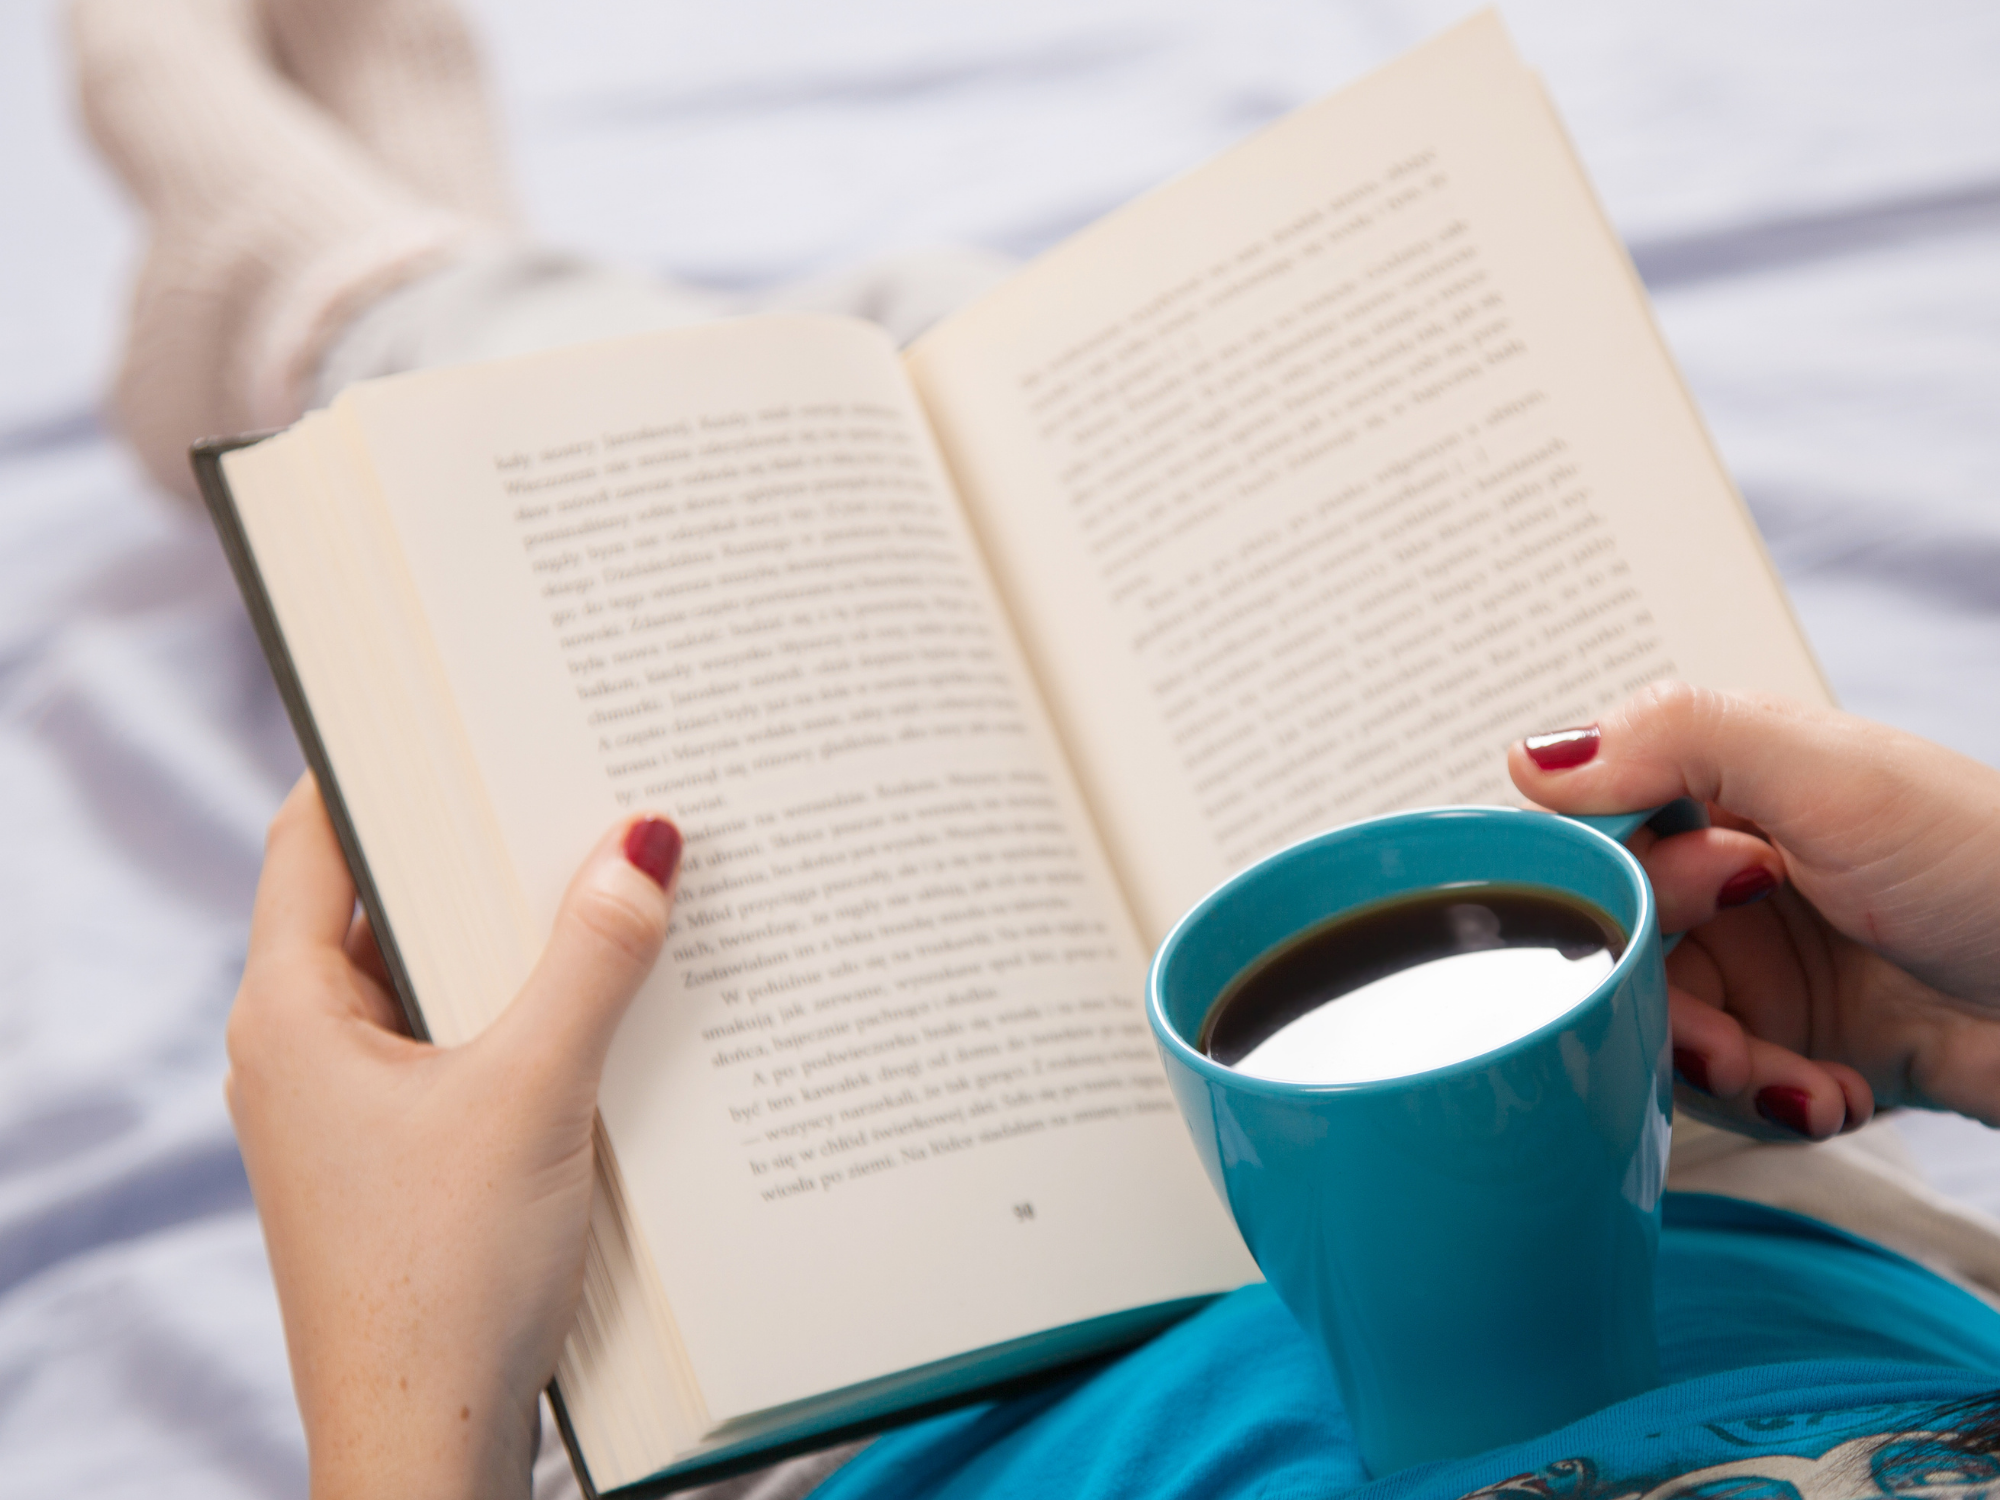 Book and coffee for social media breaks